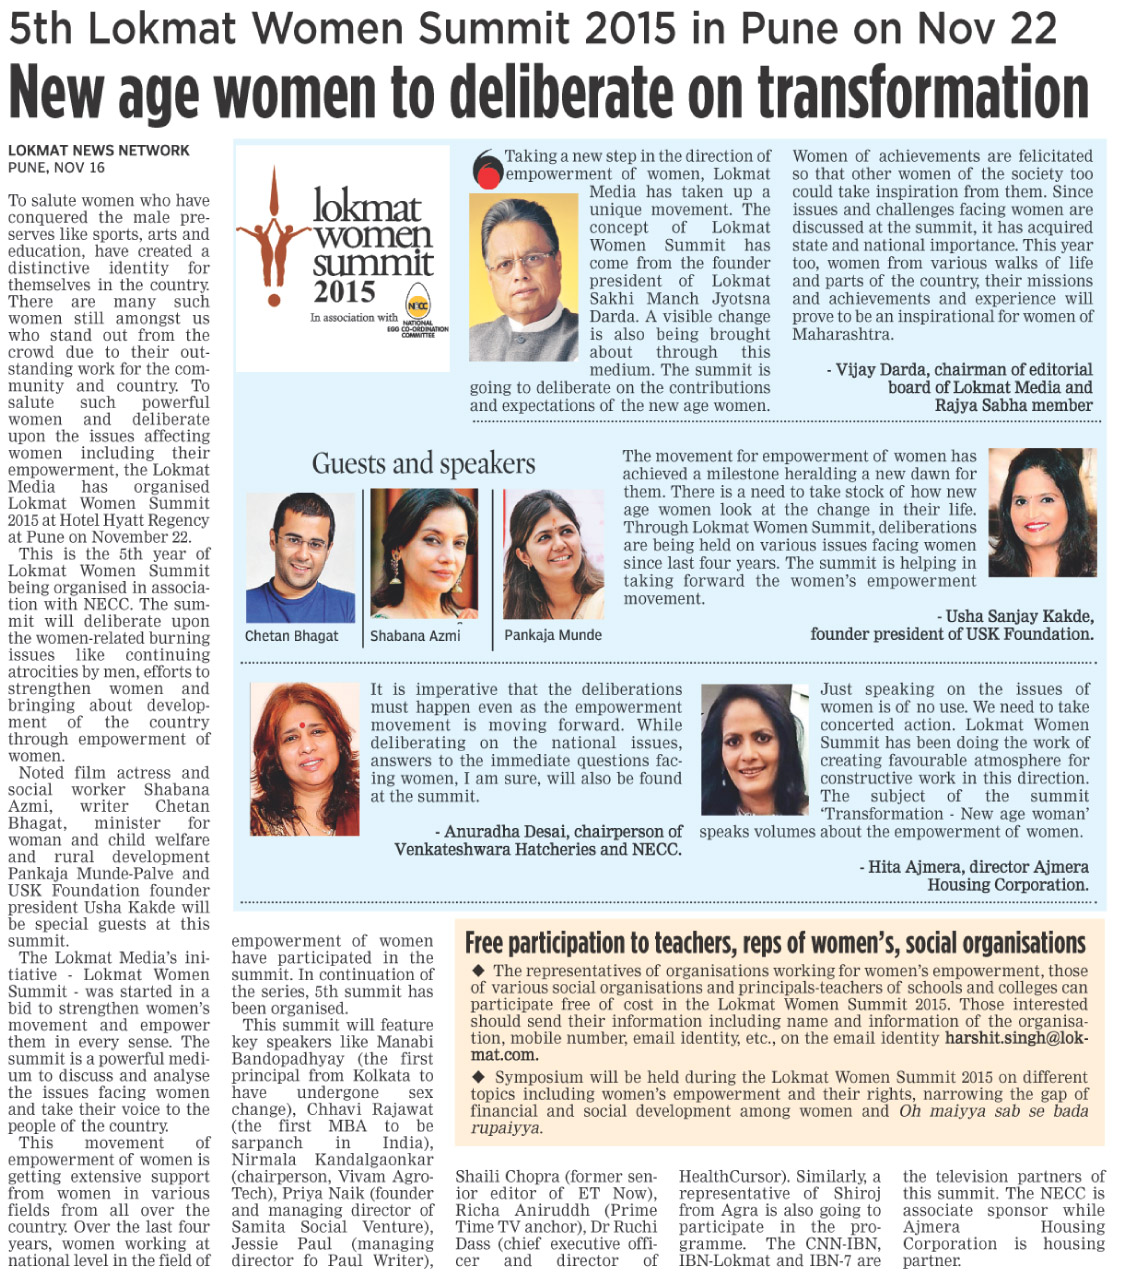 New age women to deliberate on transformation